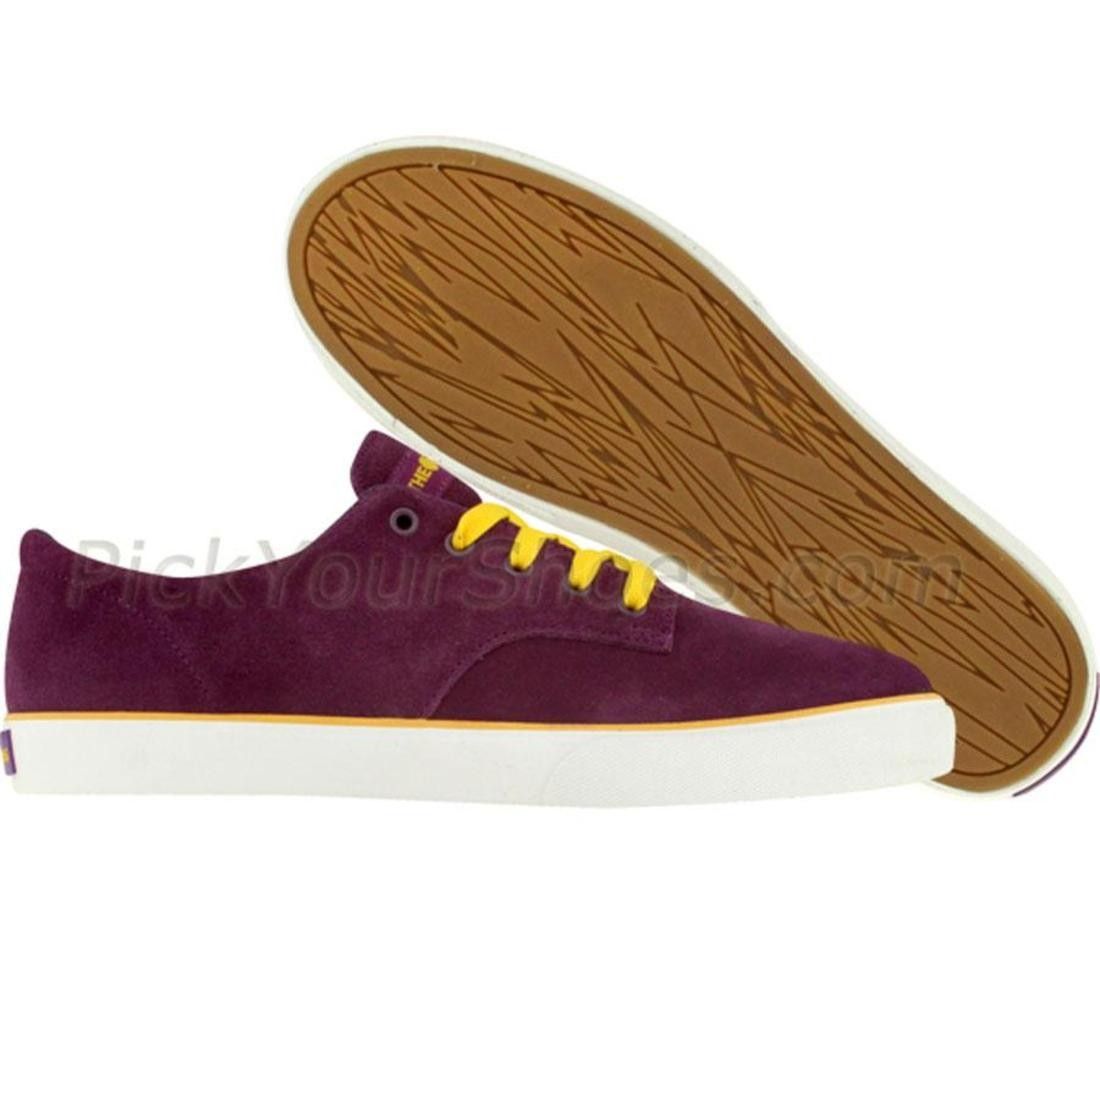 ジョンソン スニーカー メンズ 【 The Hundreds Johnson Low (purple / Gold / White) 】 Purple / Gold / White